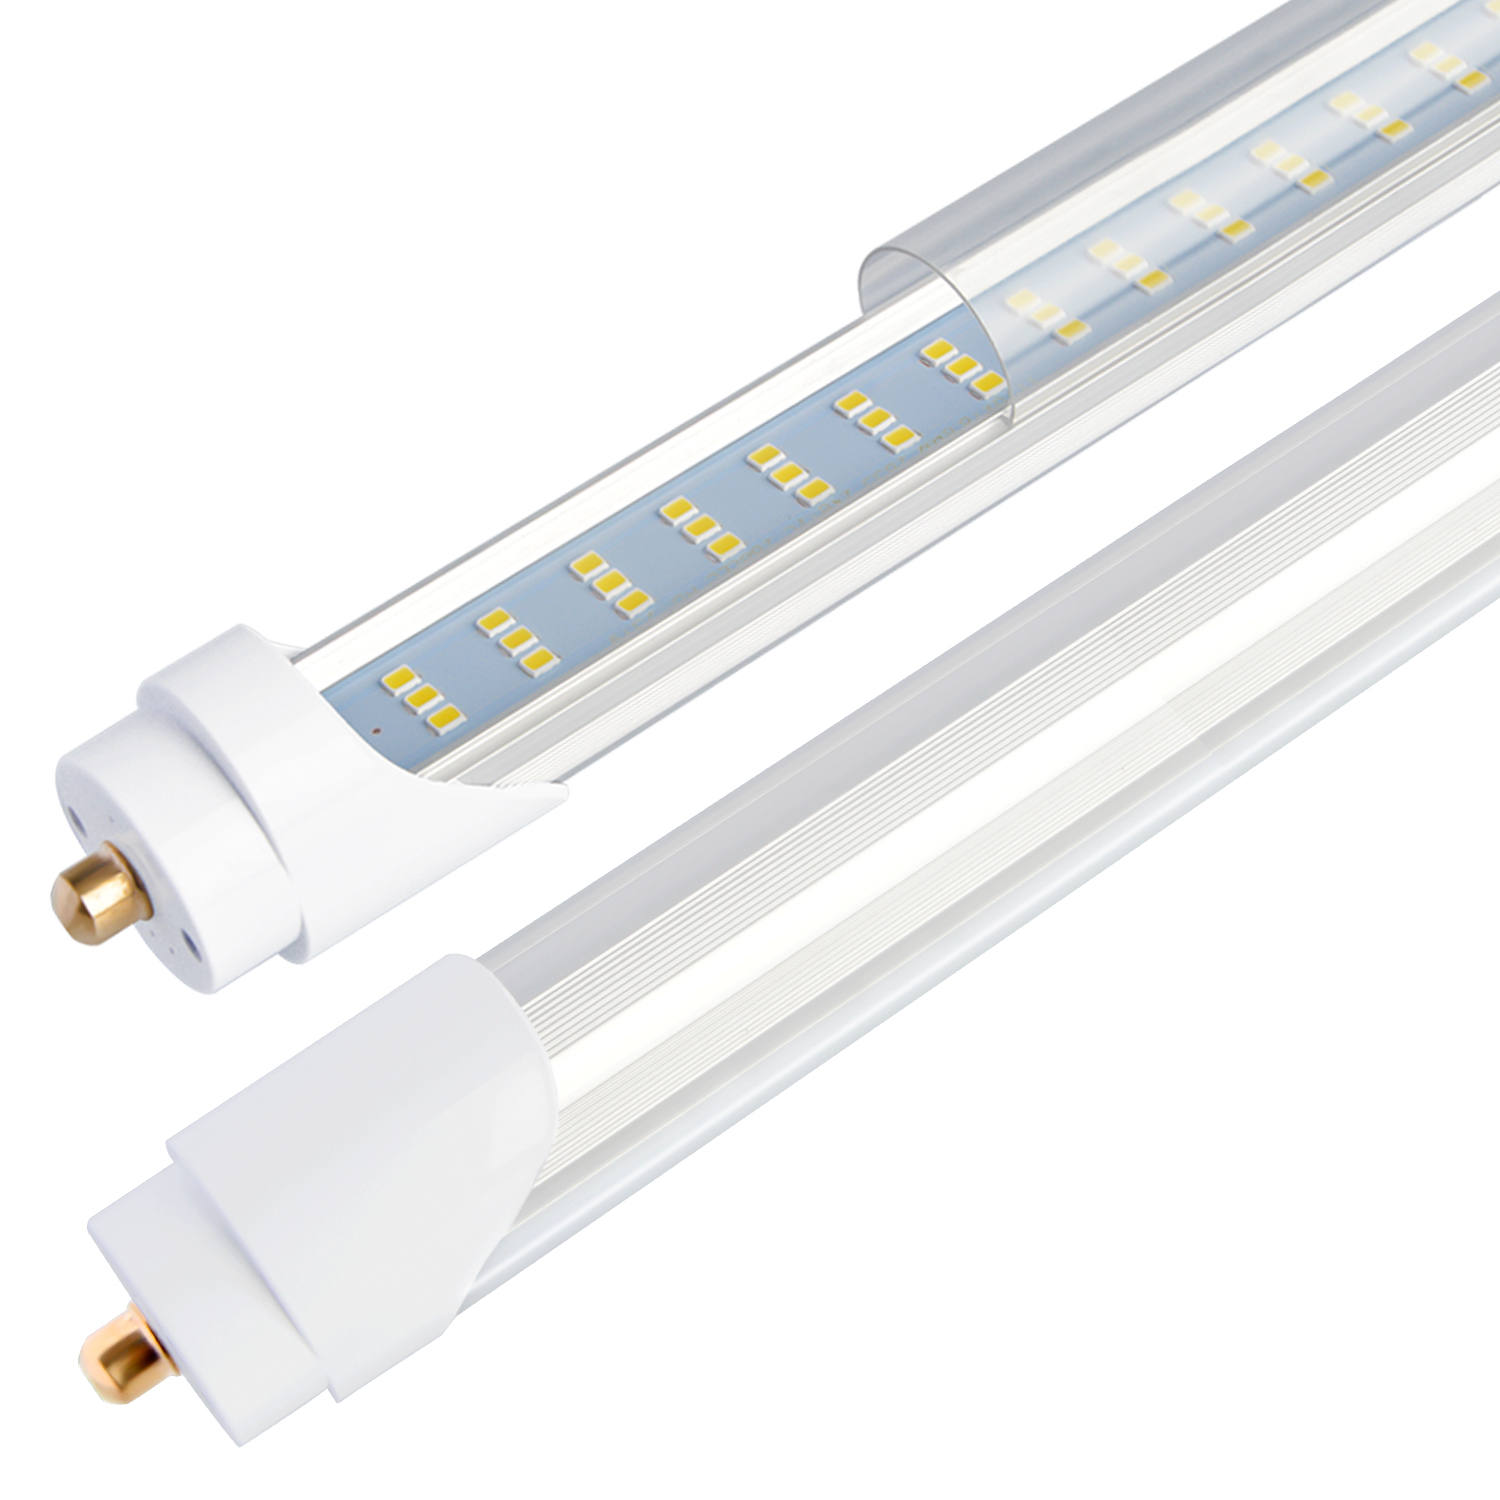 8 T8 T12 Led Tube Light  120w 6000k Clear Cover 96 3 Row